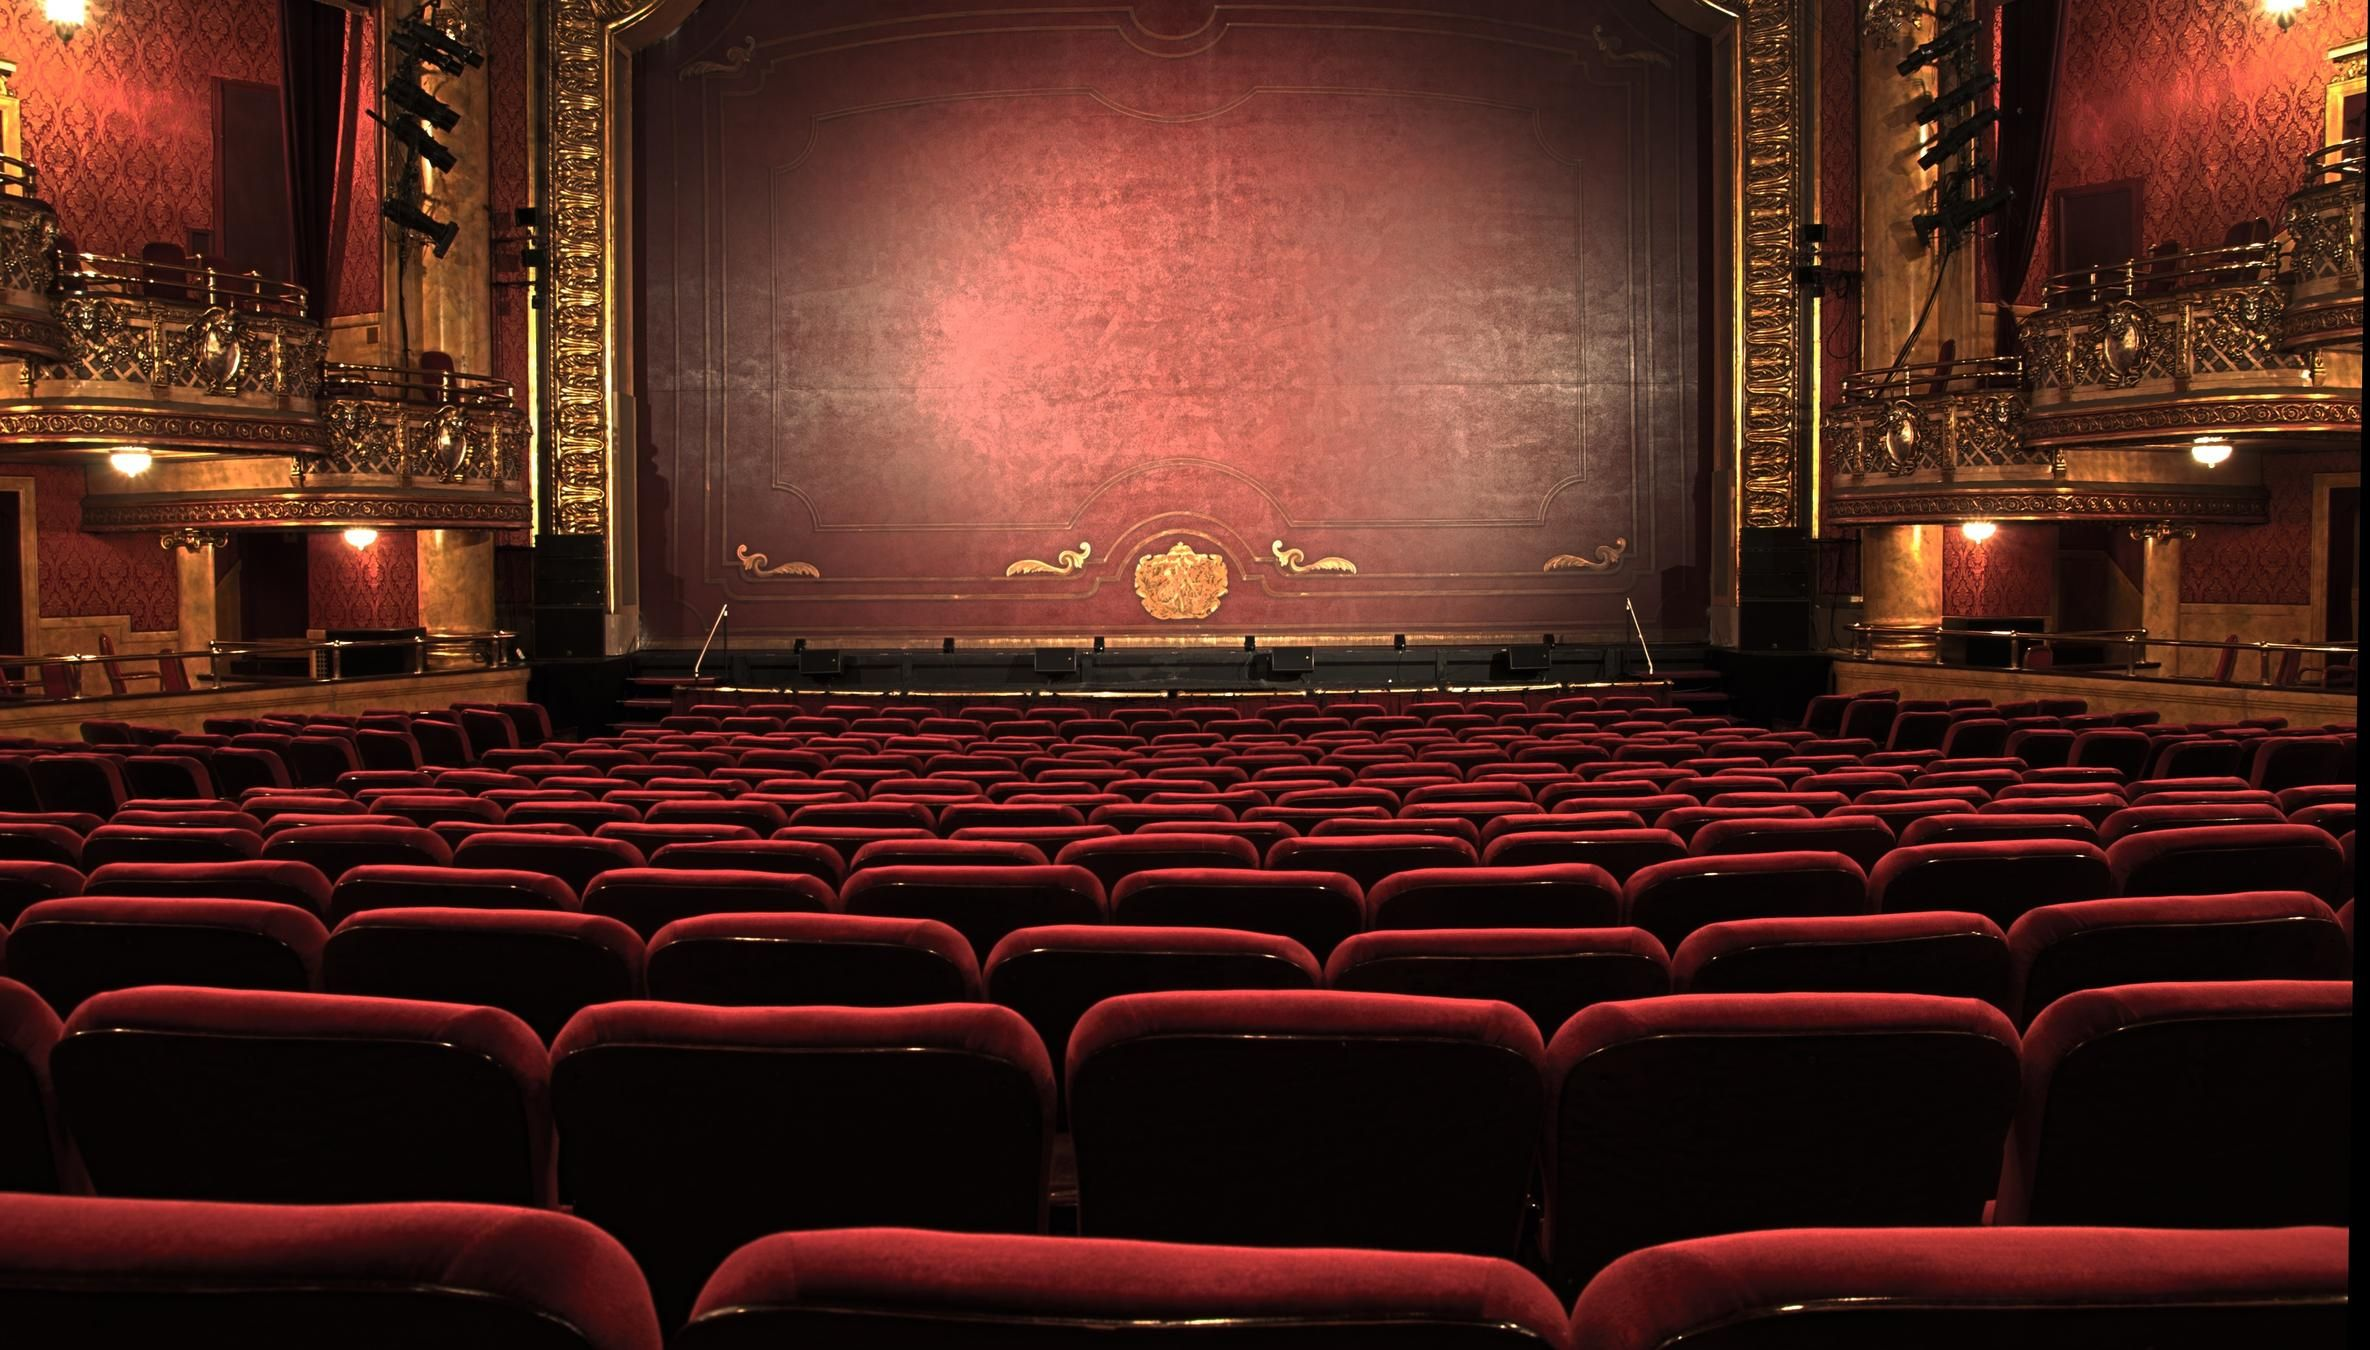 The Difference Between Working Onstage On Camera Theatre Pictures Theatre Hall Theatre Interior